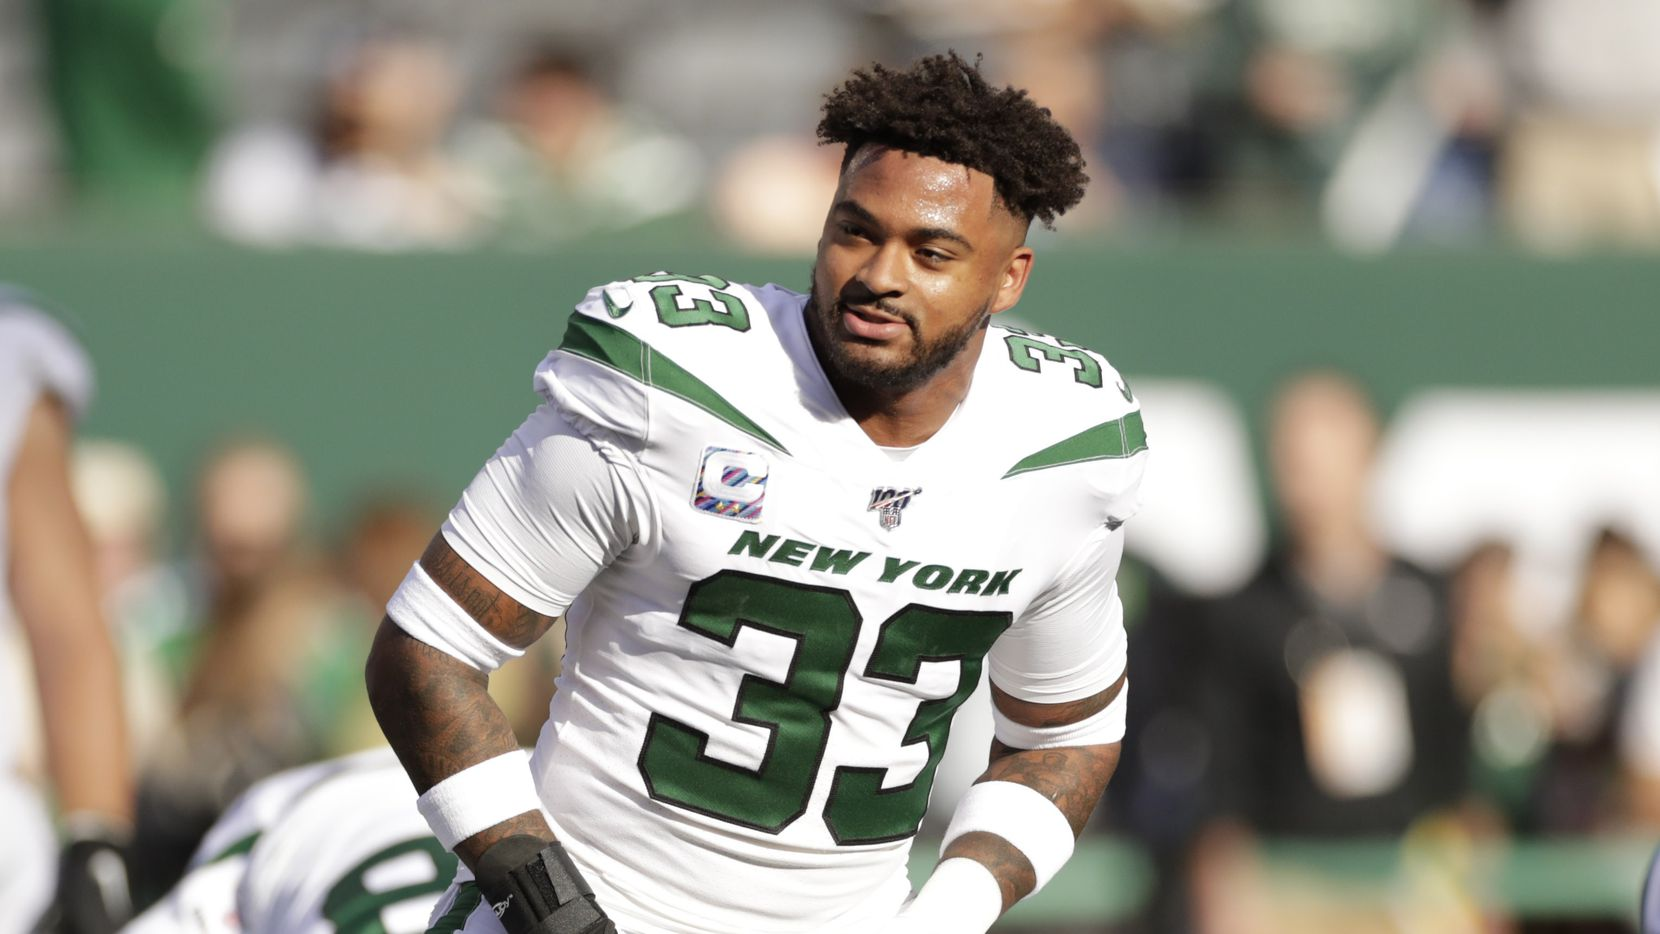 FILE - New York Jets safety Jamal Adams warms up before a game against the Dallas Cowboys on Sunday, Oct. 13, 2019, in East Rutherford, N.J. (AP Photo/Adam Hunger)